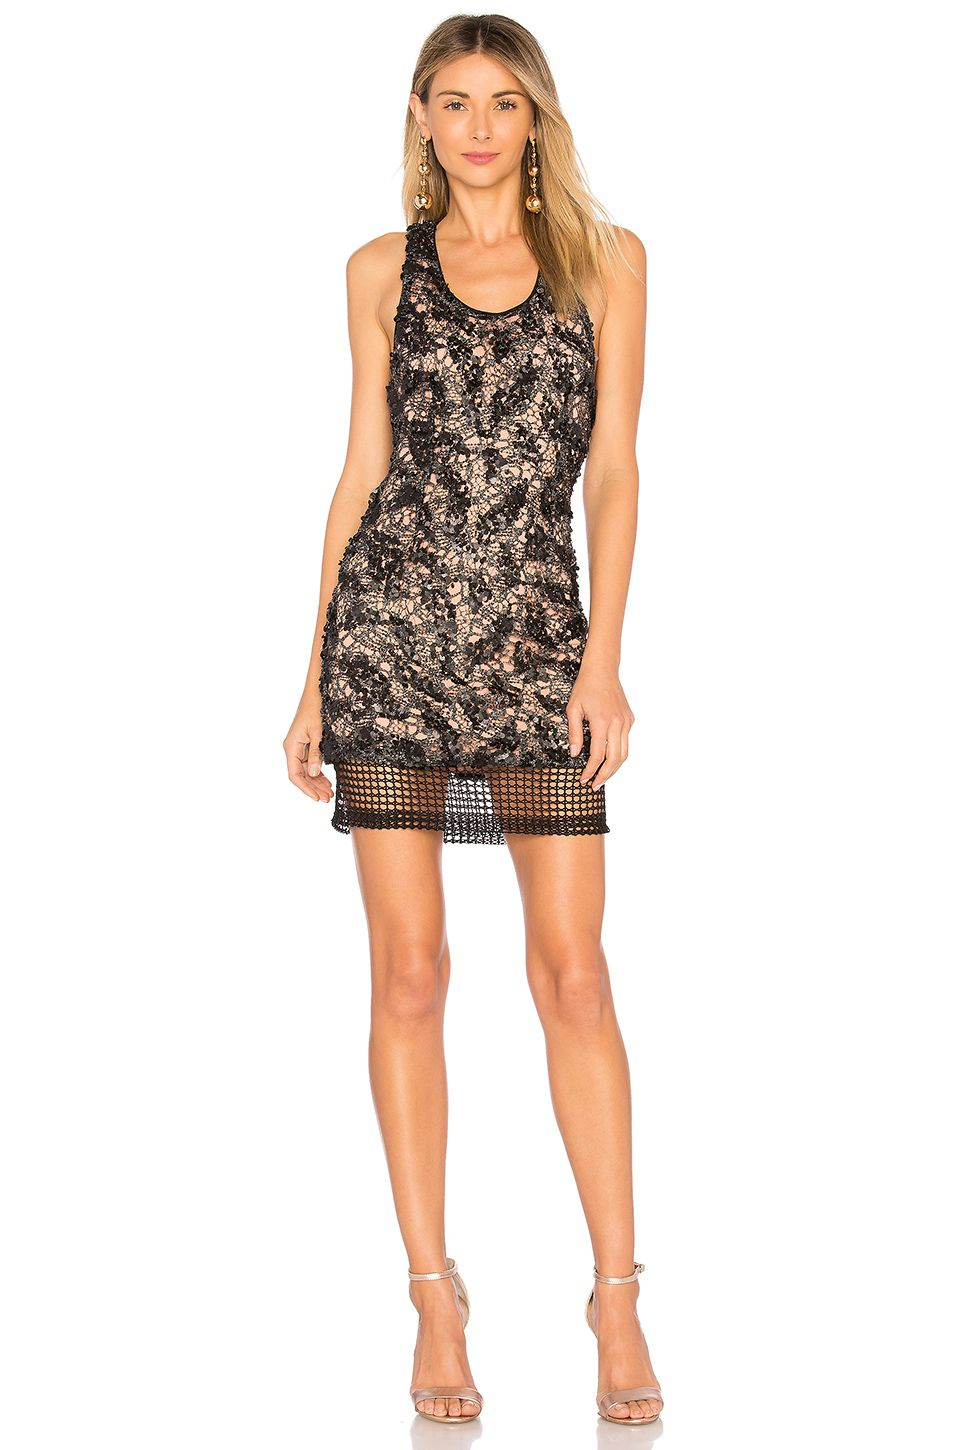 417bf3aa8640 X by NBD Don't Speak My Name Dress in Black | Dynamite Dresses in ...